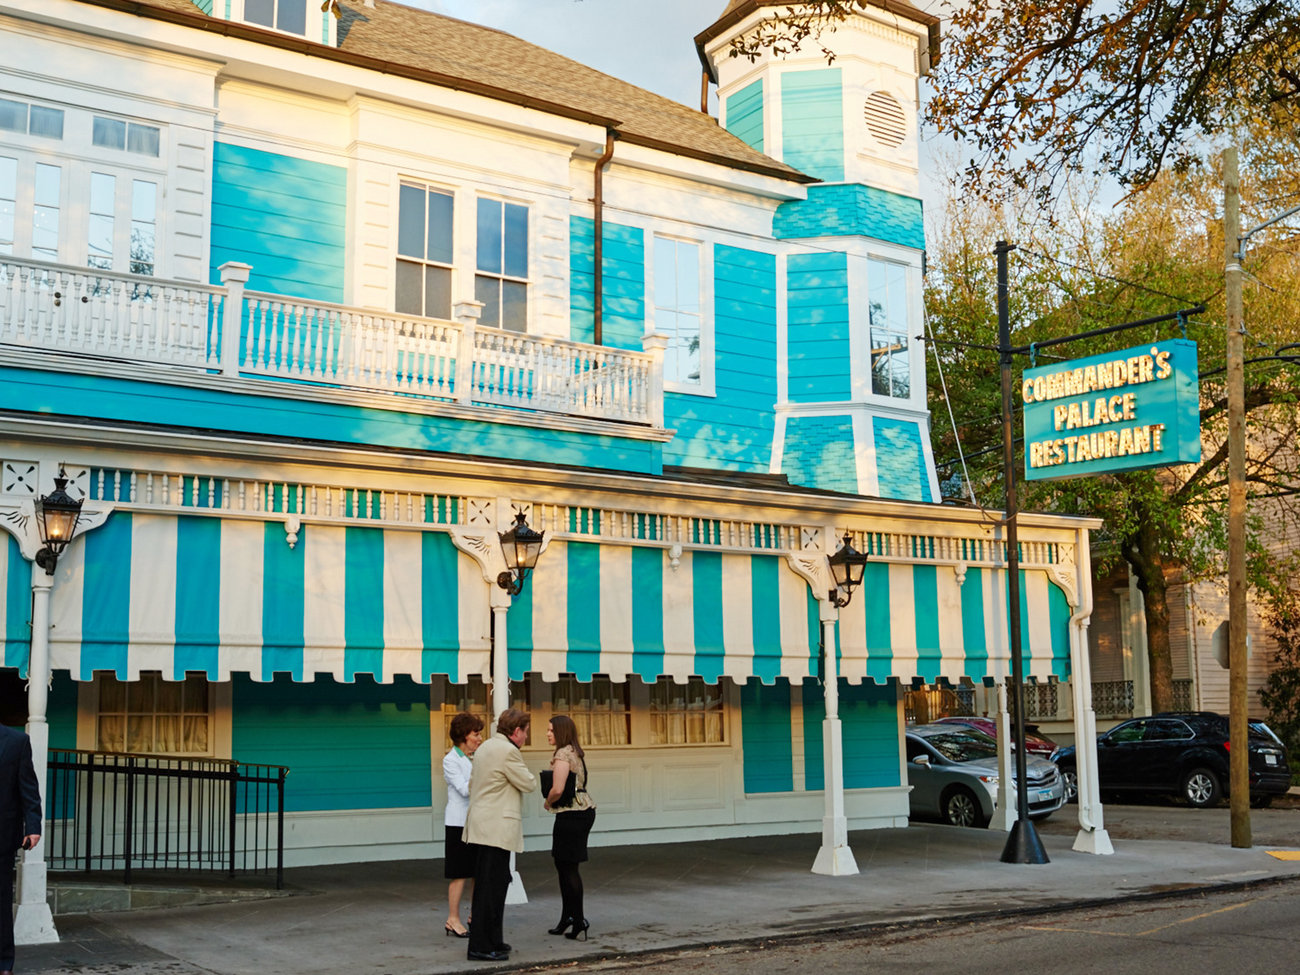 Commander's Palace Restaurant in New Orleans